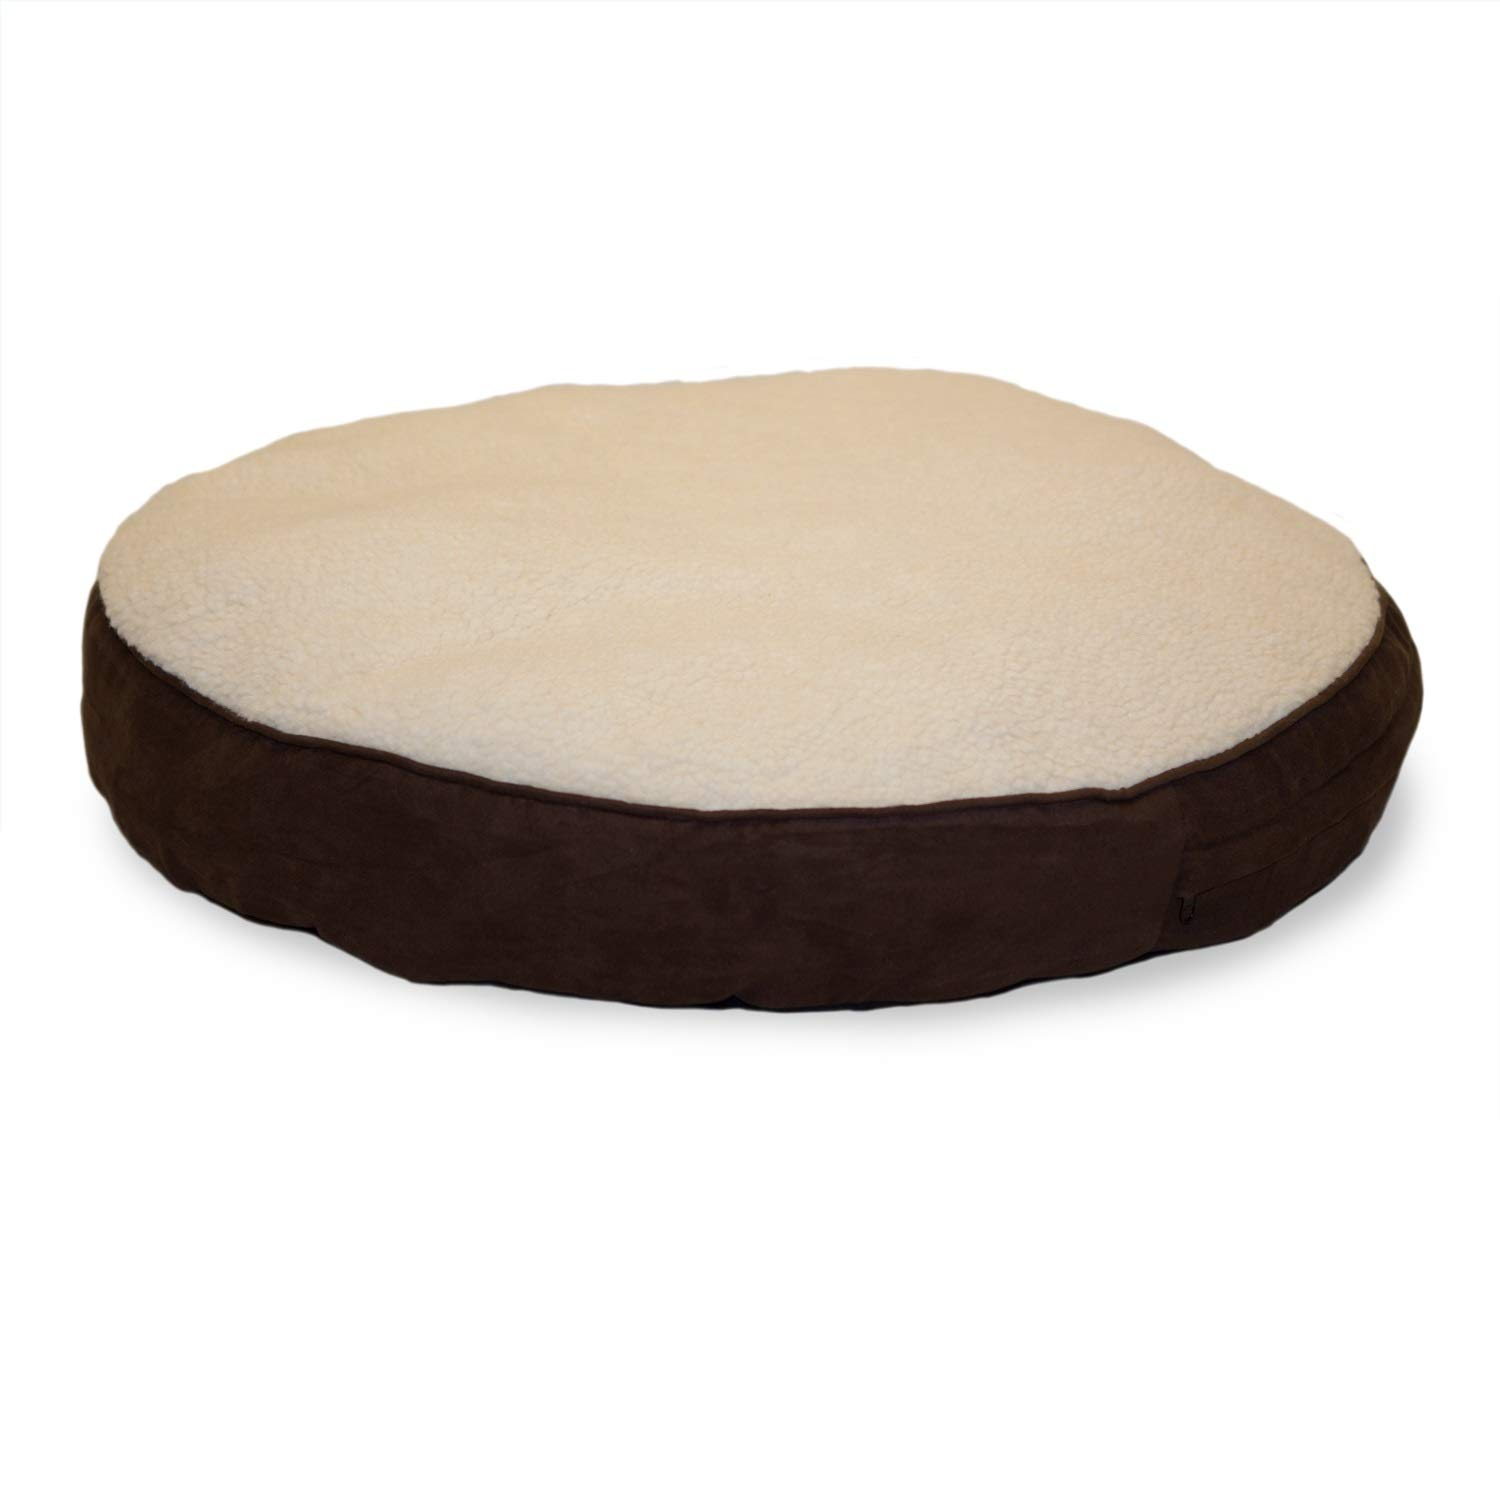 Furhaven Pet Dog Bed - Faux Sheepskin Sherpa and Suede Refillable Deluxe Round Pillow Cushion Pet Bed with Removable Cover for Dogs and Cats, Espresso, 26-Inch